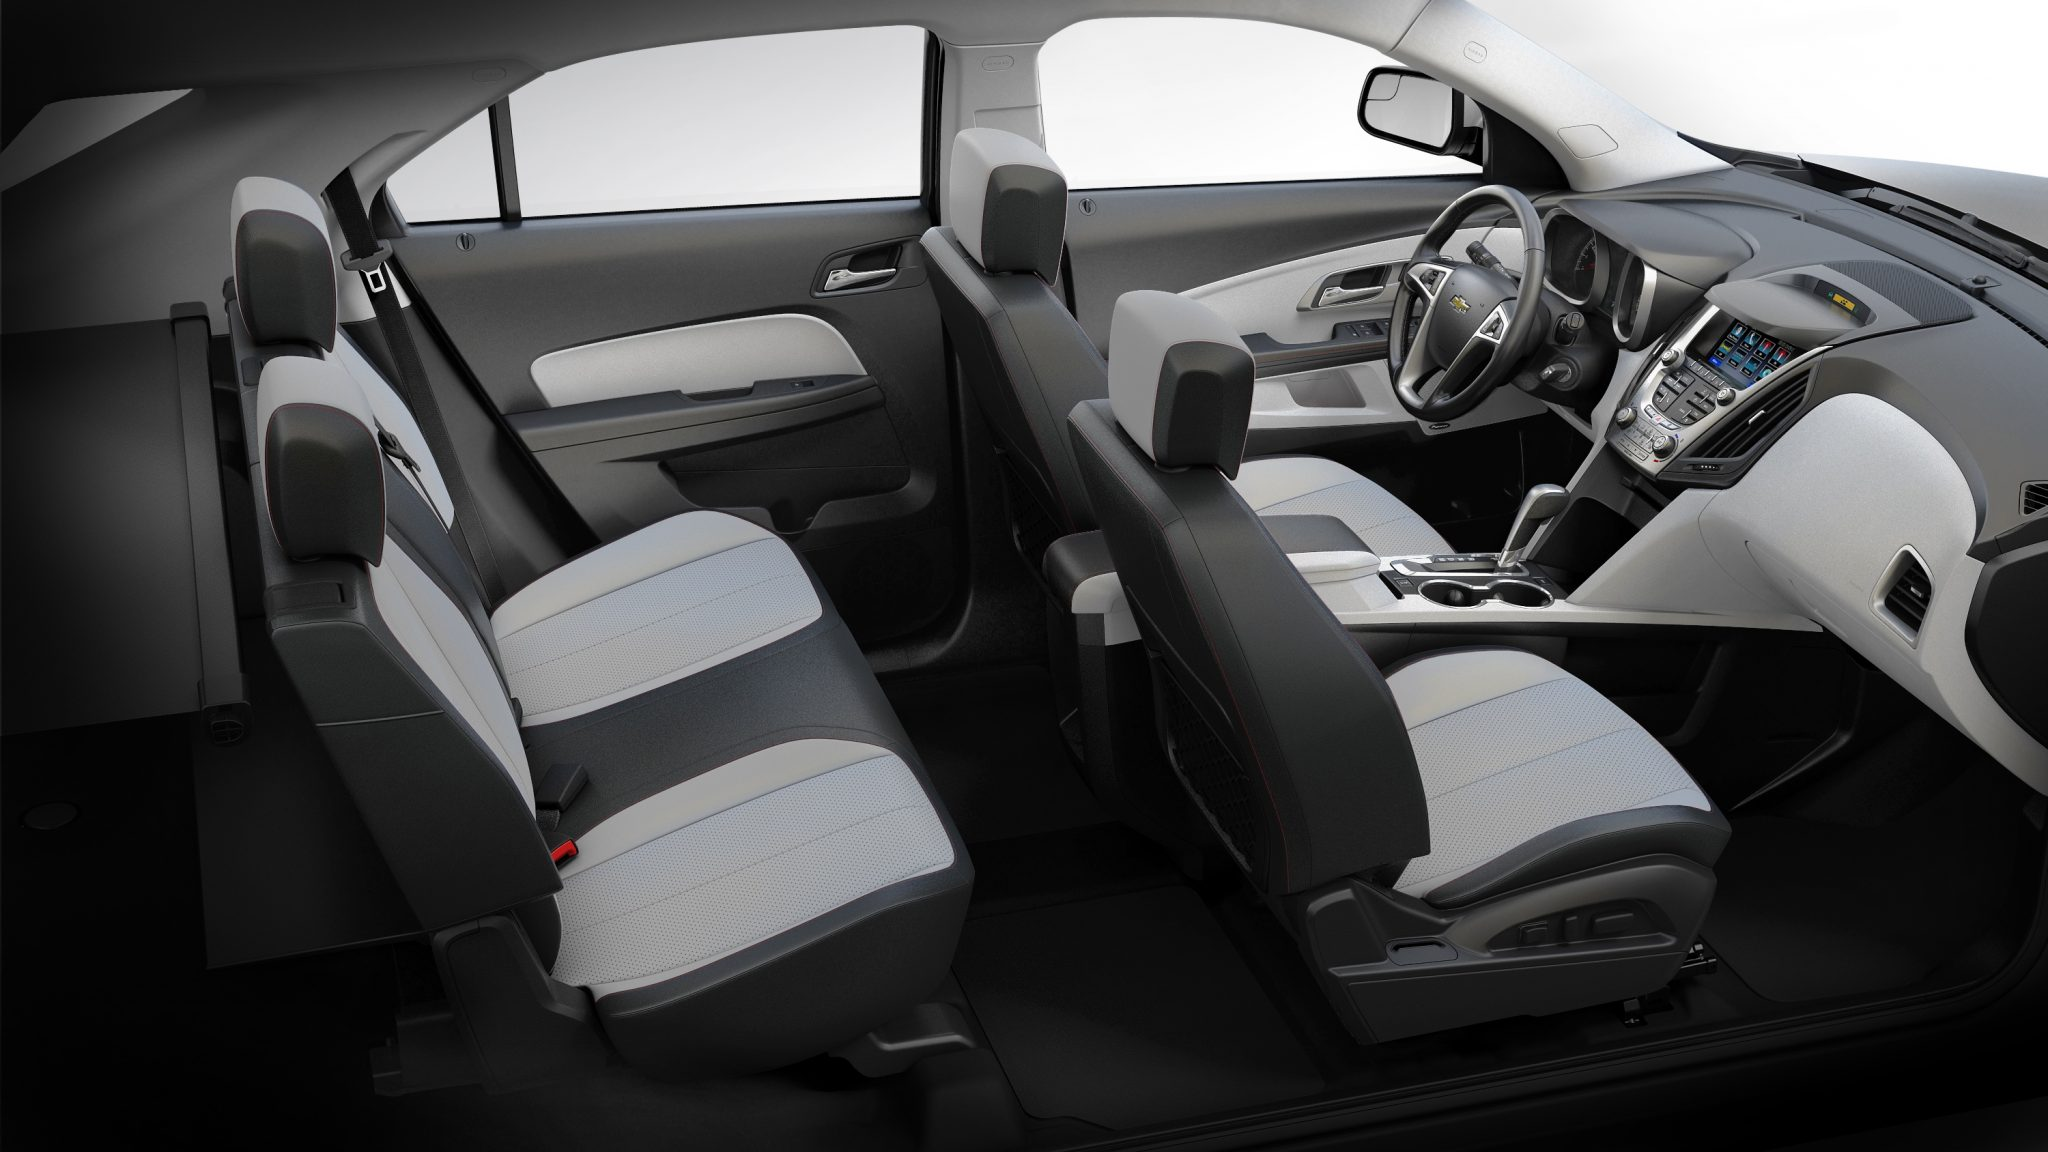 2015 chevrolet equinox overview the news wheel. Black Bedroom Furniture Sets. Home Design Ideas